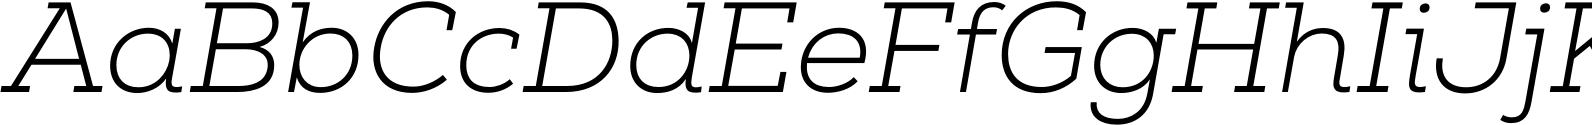 Nexa Slab Light Italic